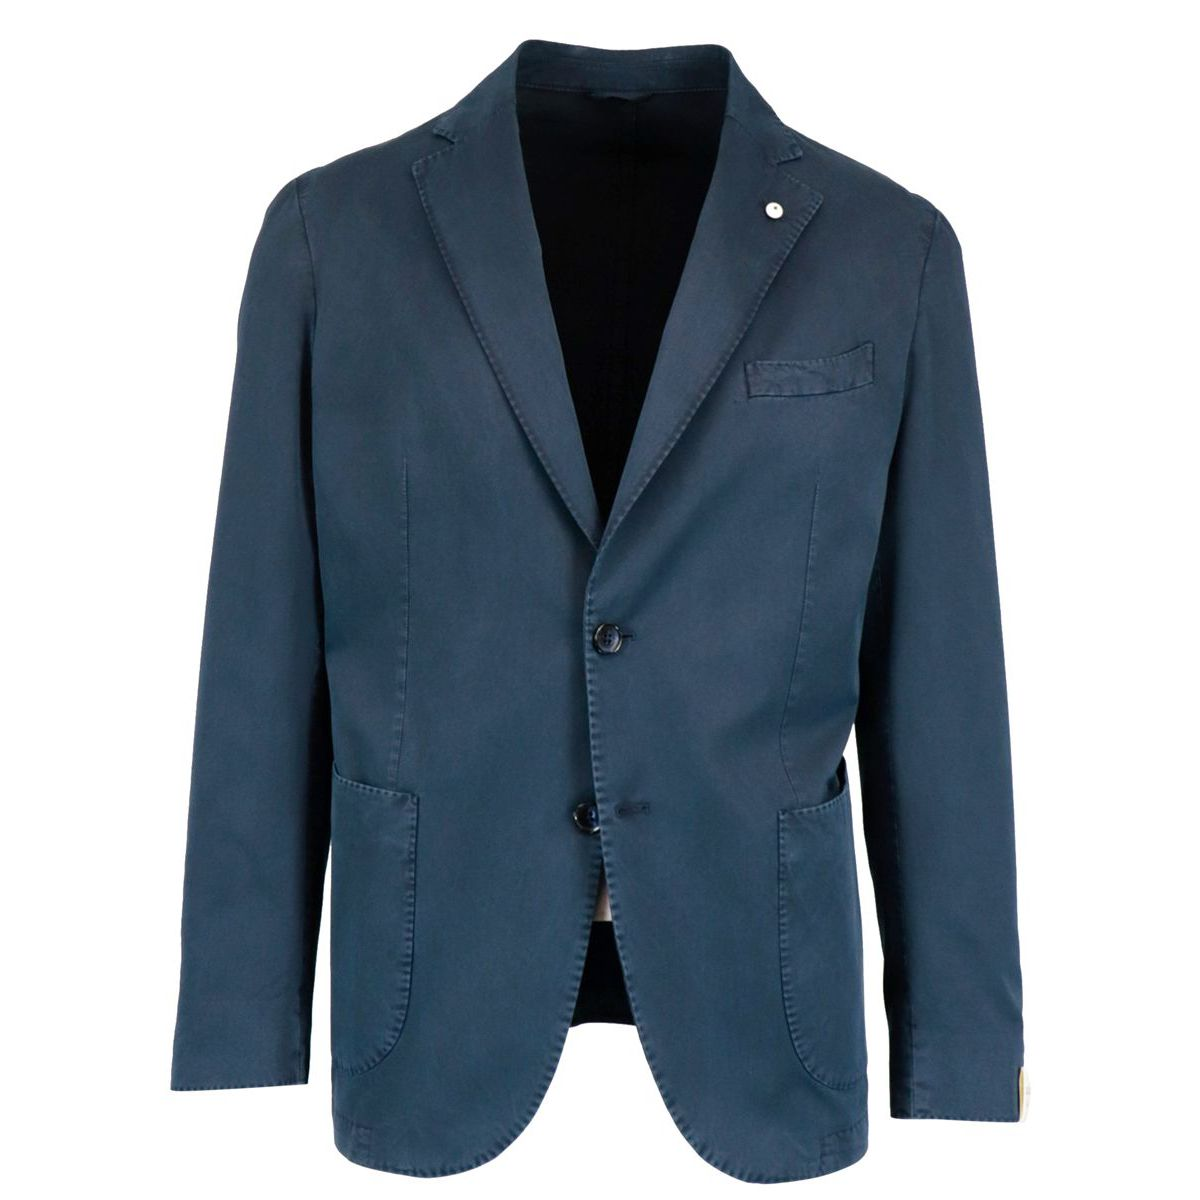 Two-button jacket in cotton and silk Blue L.B.M. 1911